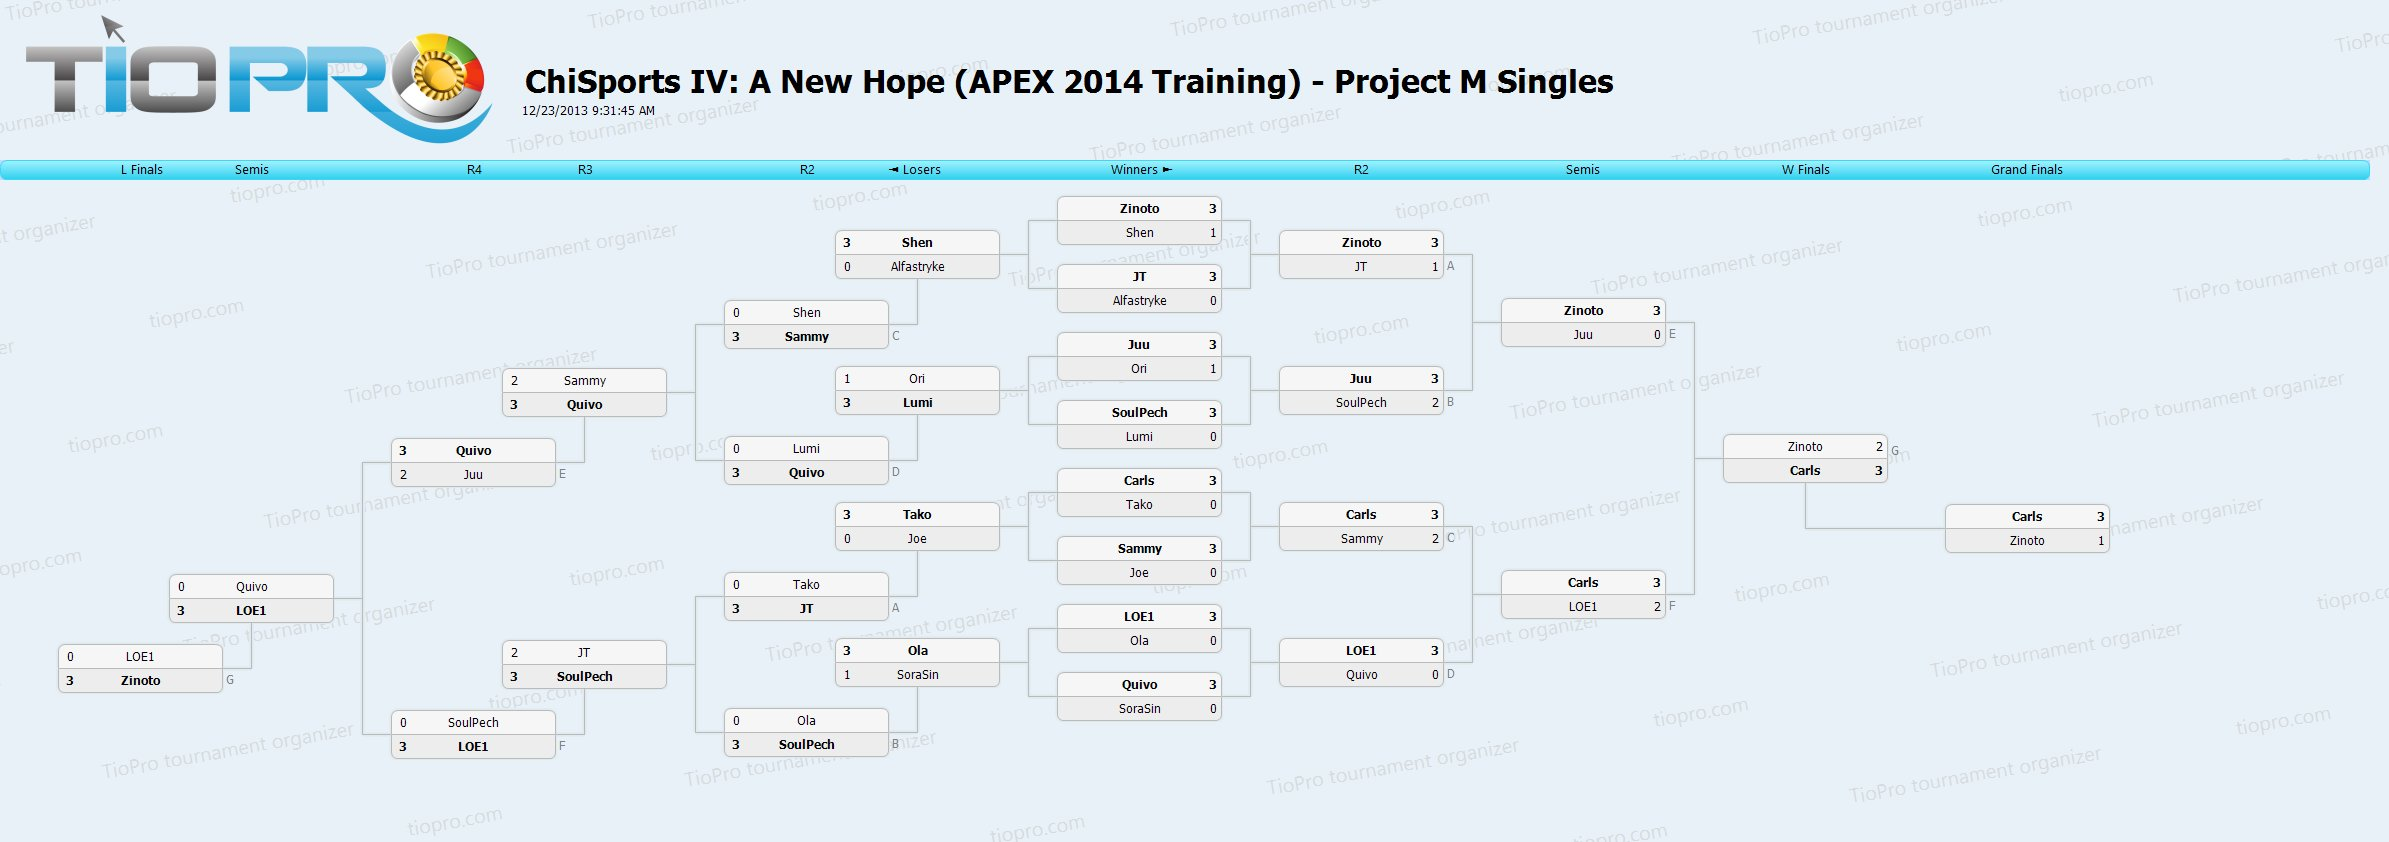 ChiSports IV: A New Hope - Project M Singles